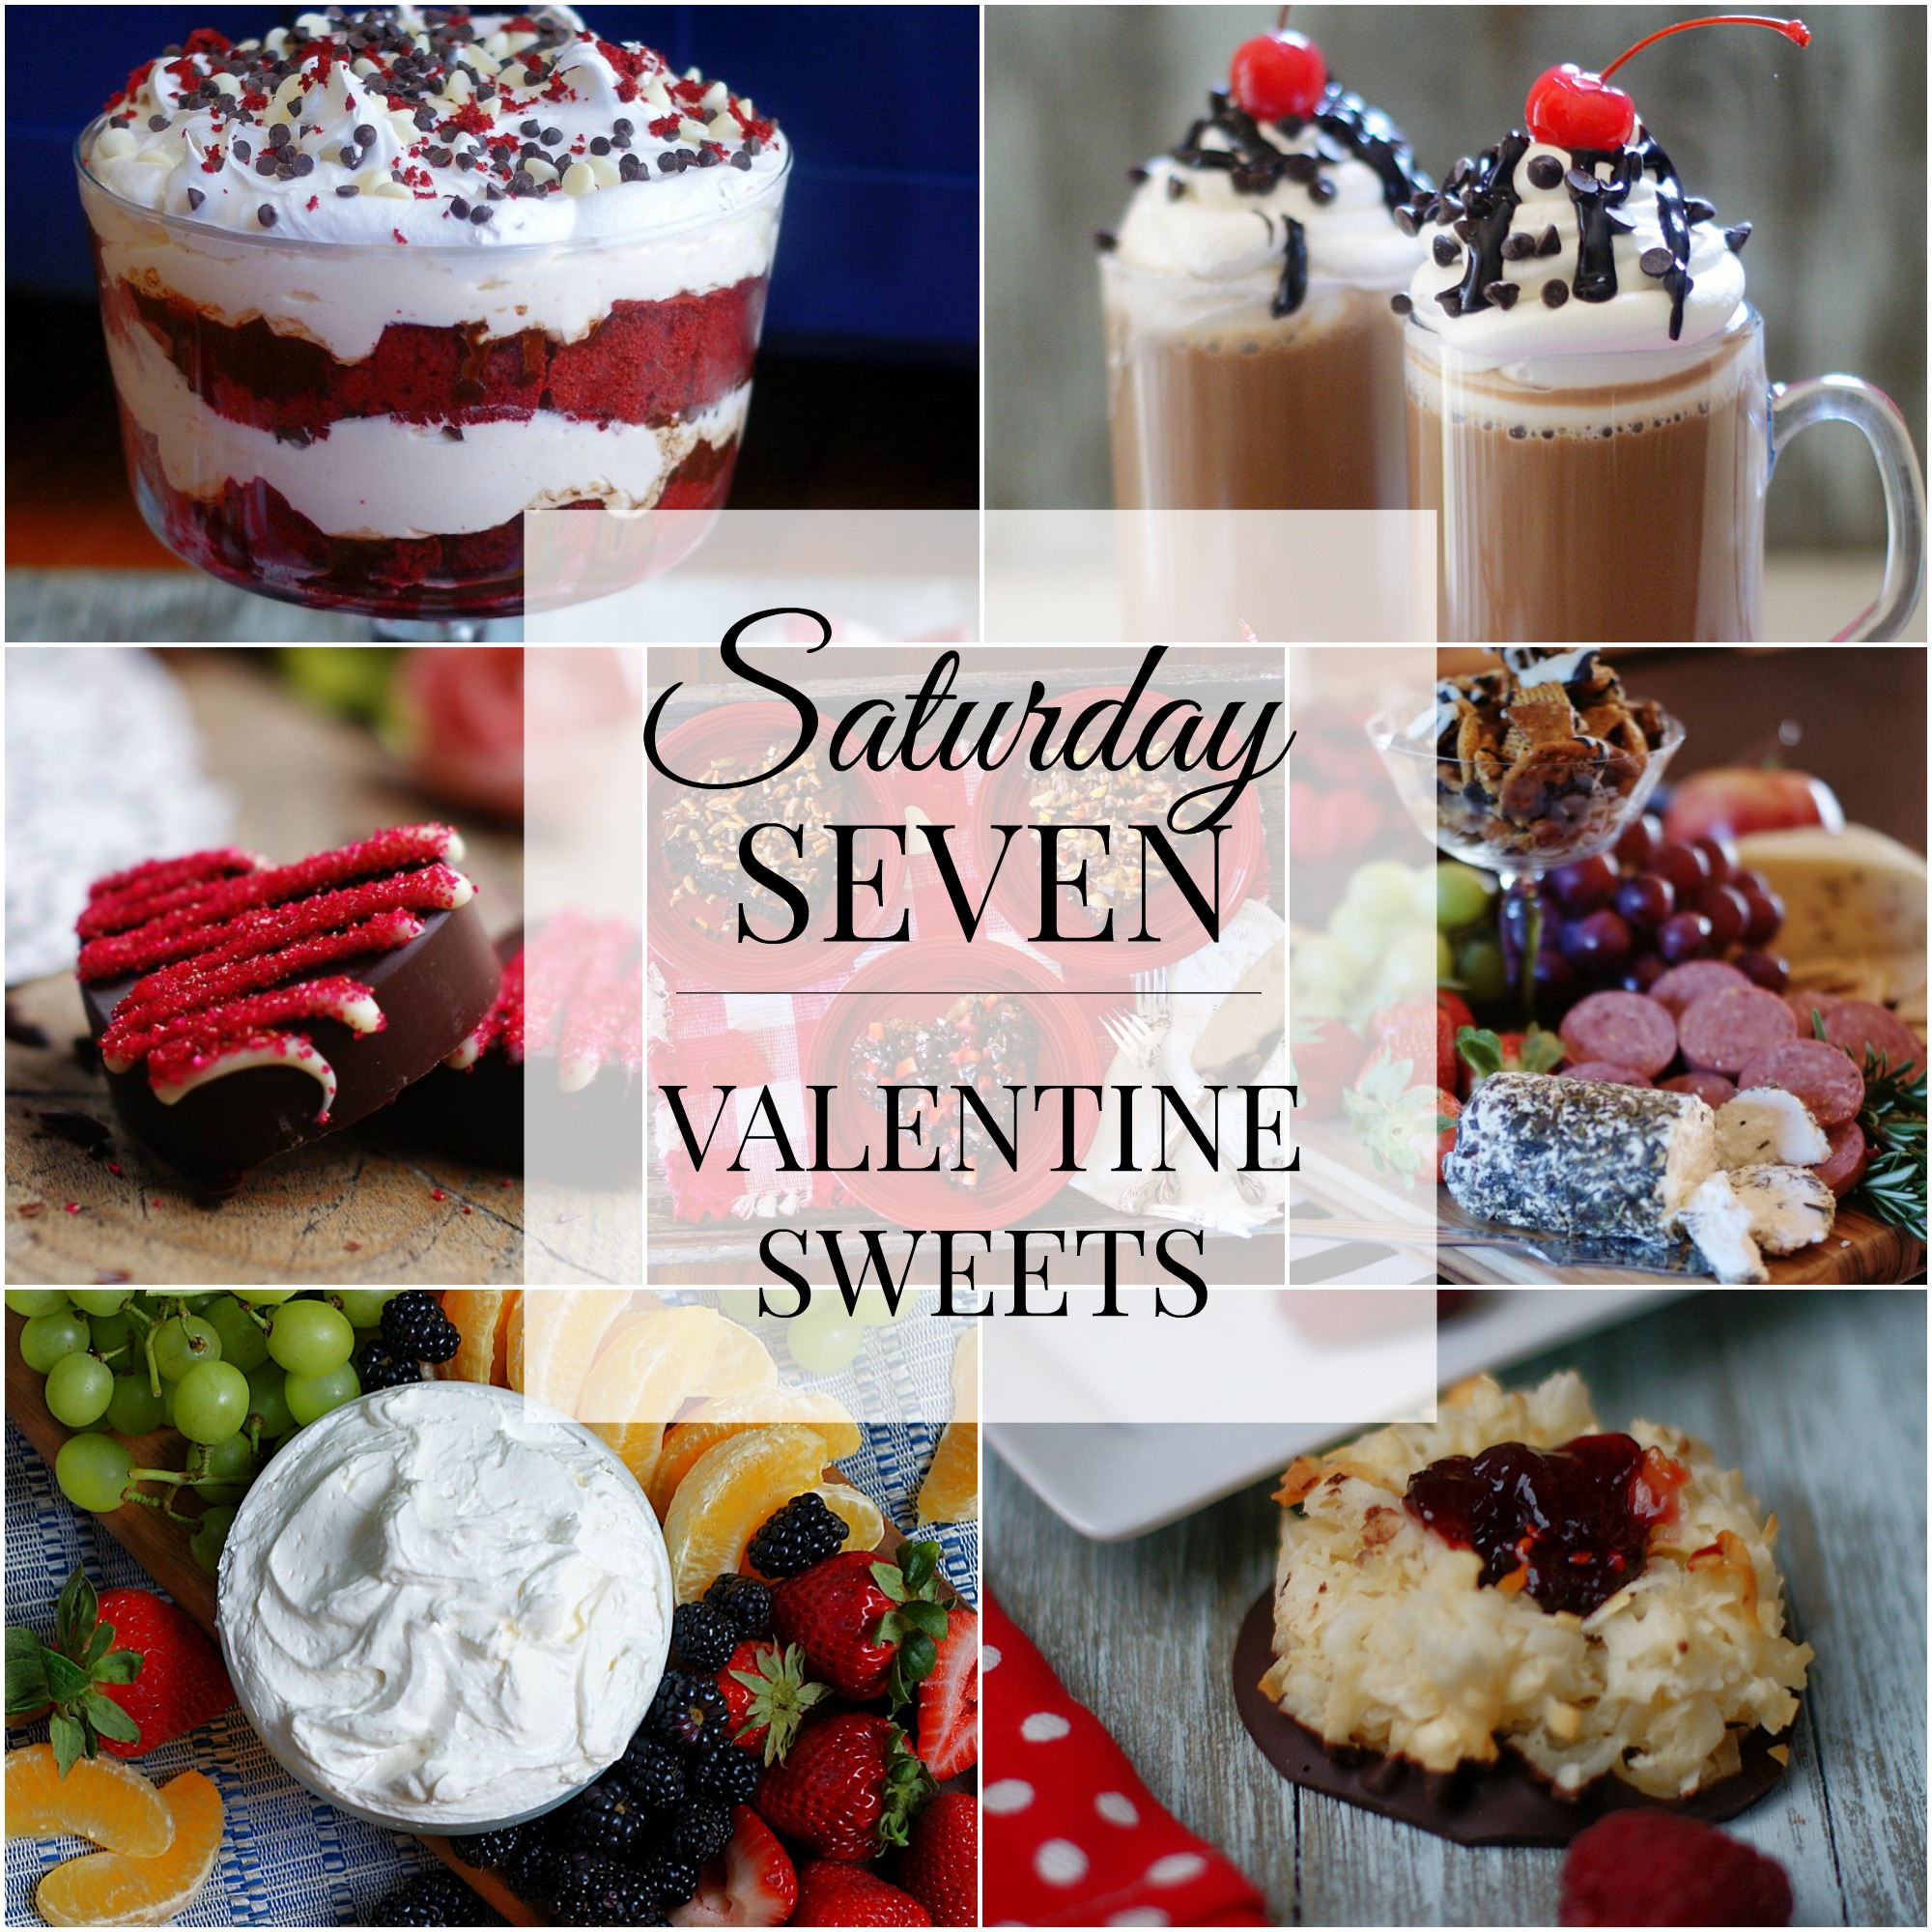 Valentine Sweets Title Collage